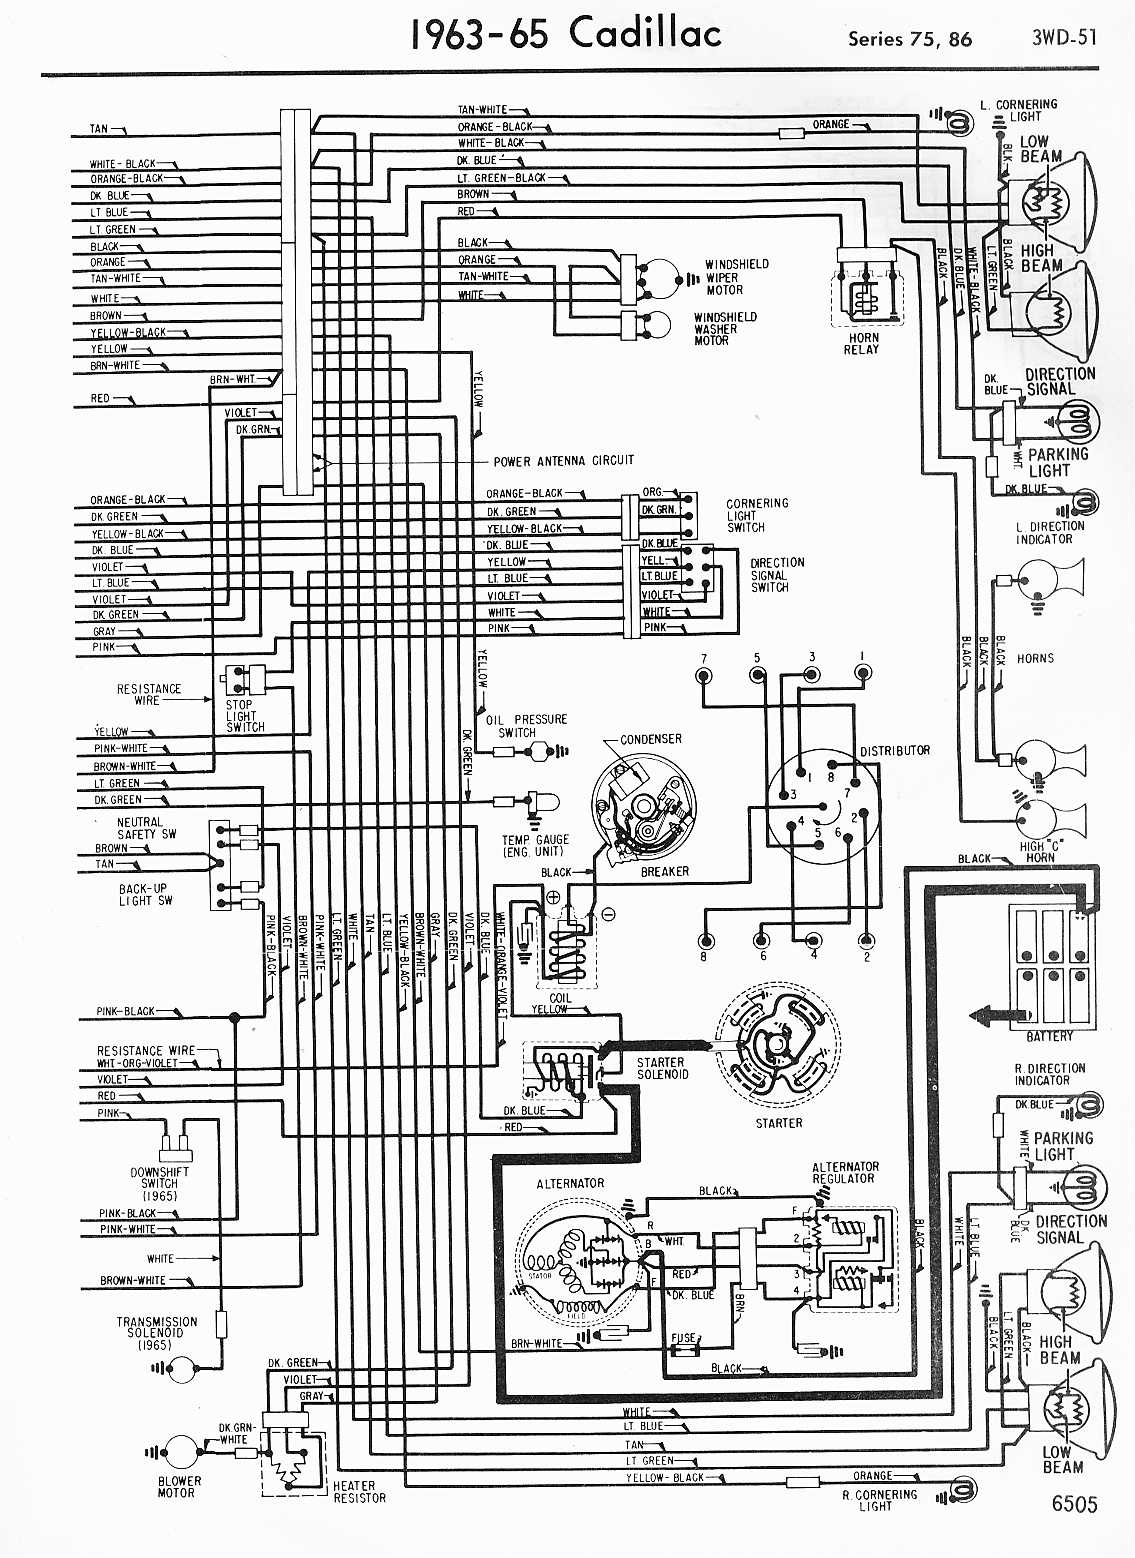 MWireCadi65_3WD 051 cadillac wiring diagrams 1957 1965 1954 plymouth belvedere wiring diagram at crackthecode.co